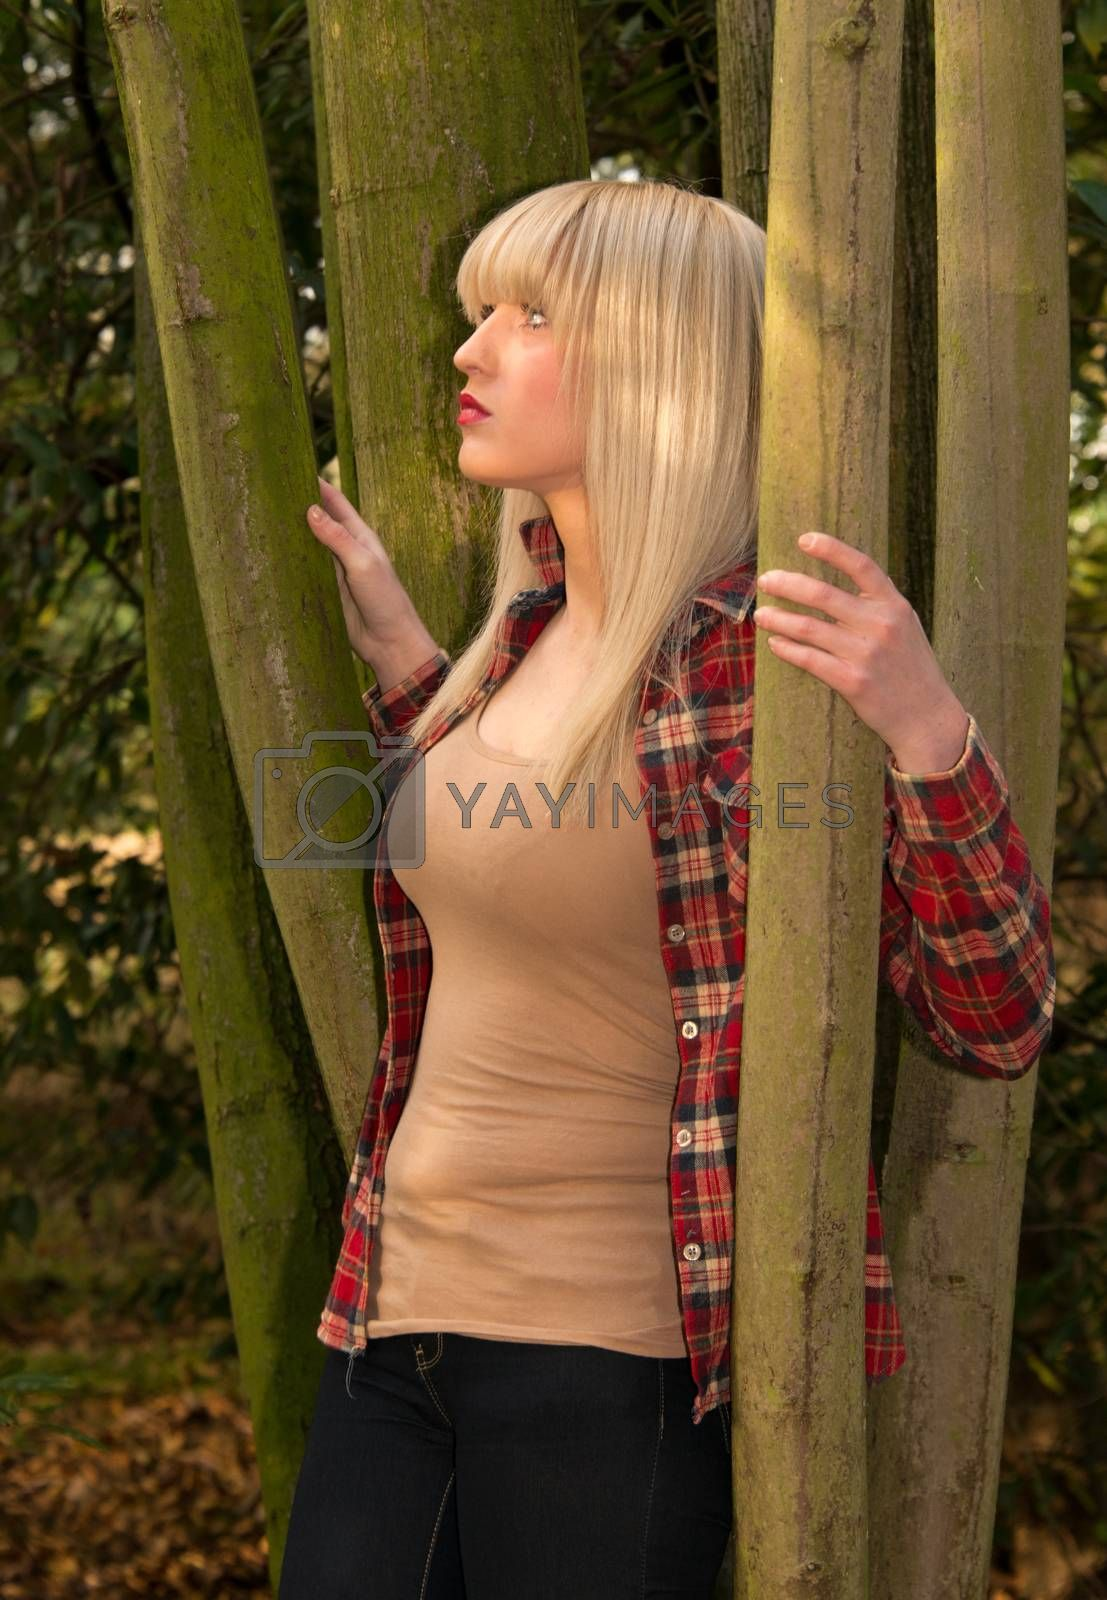 Blonde Woman in the Trees